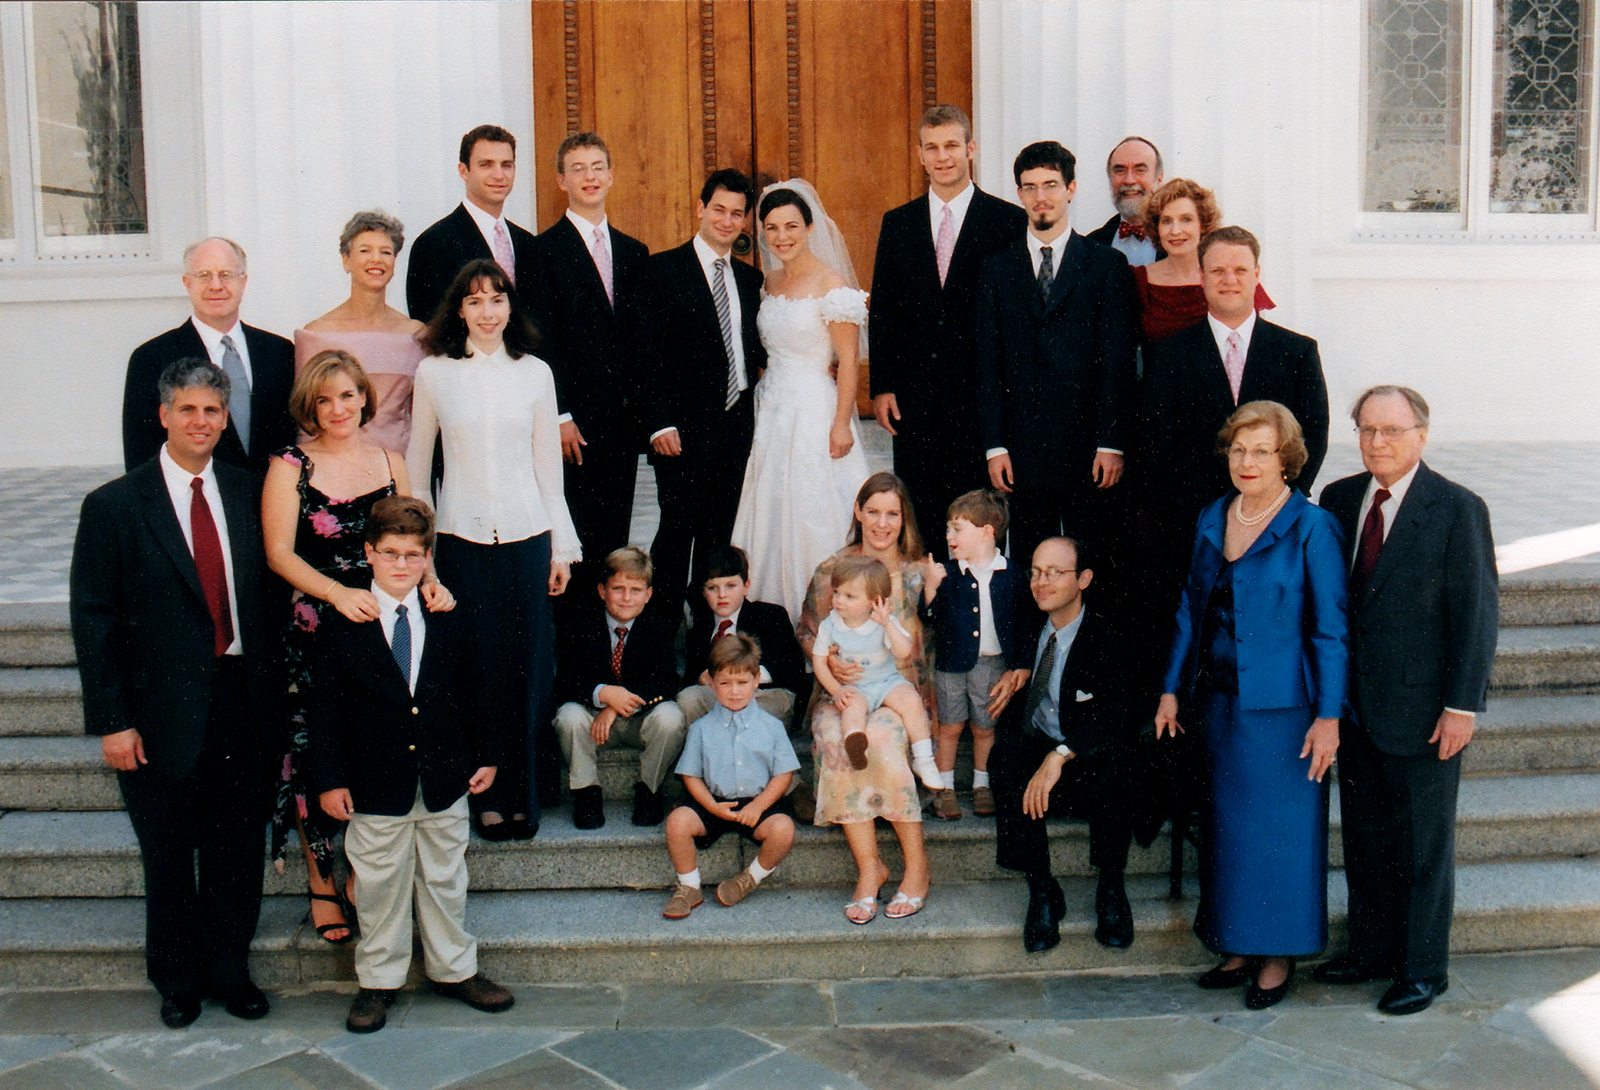 Rabbi Nussbaum and family at her wedding, 2003.